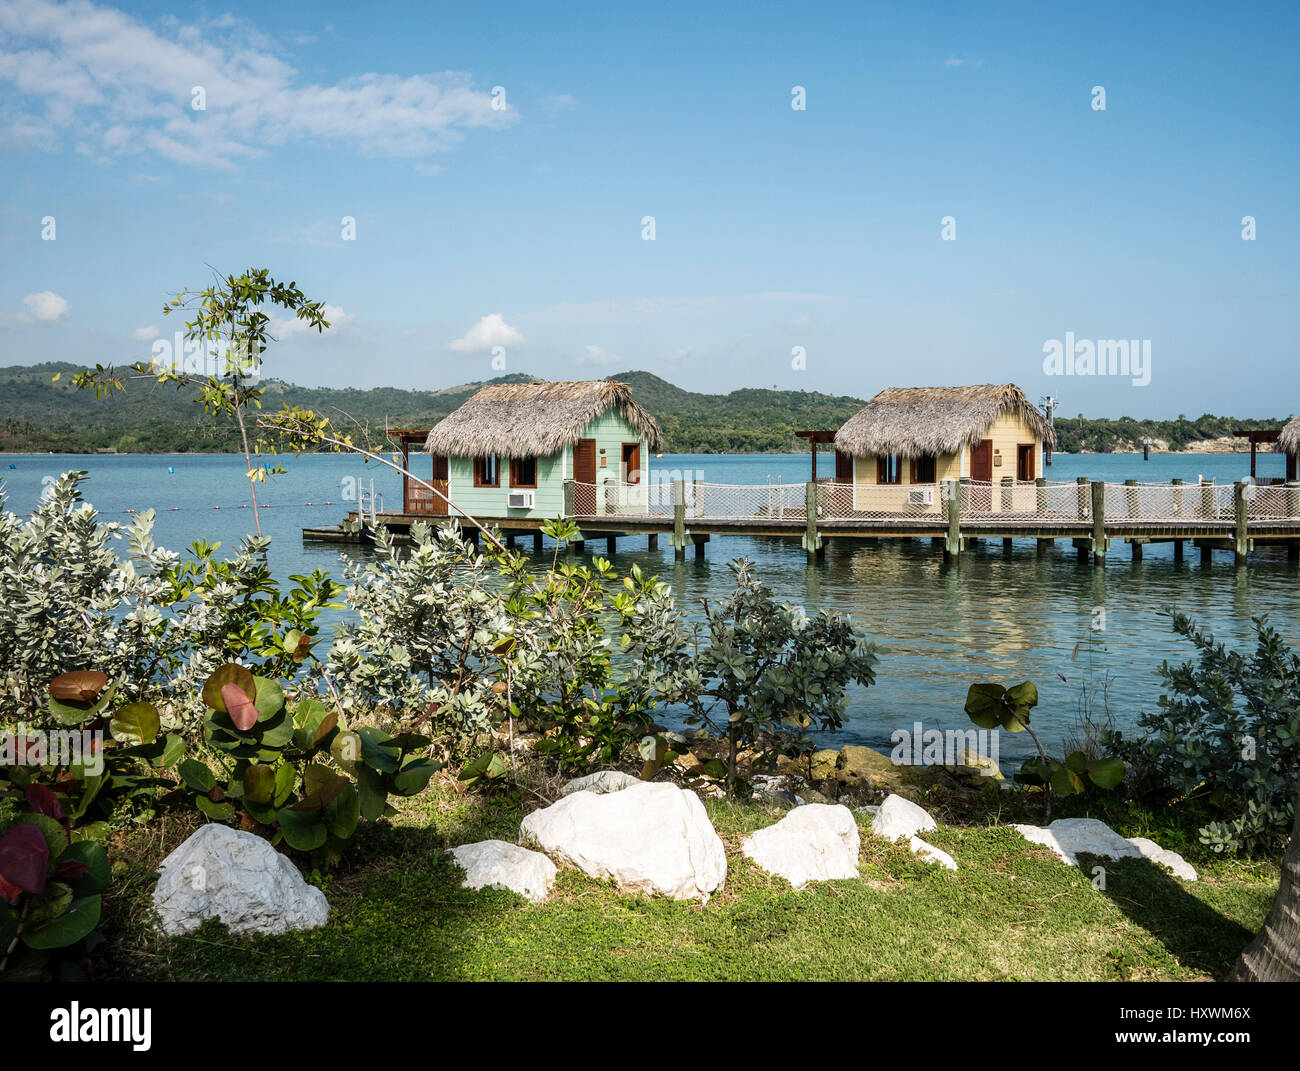 Holiday Cabins at Custom Built Amber Cove Cruise Resort in Caribbean Dominican Republic - Stock Image